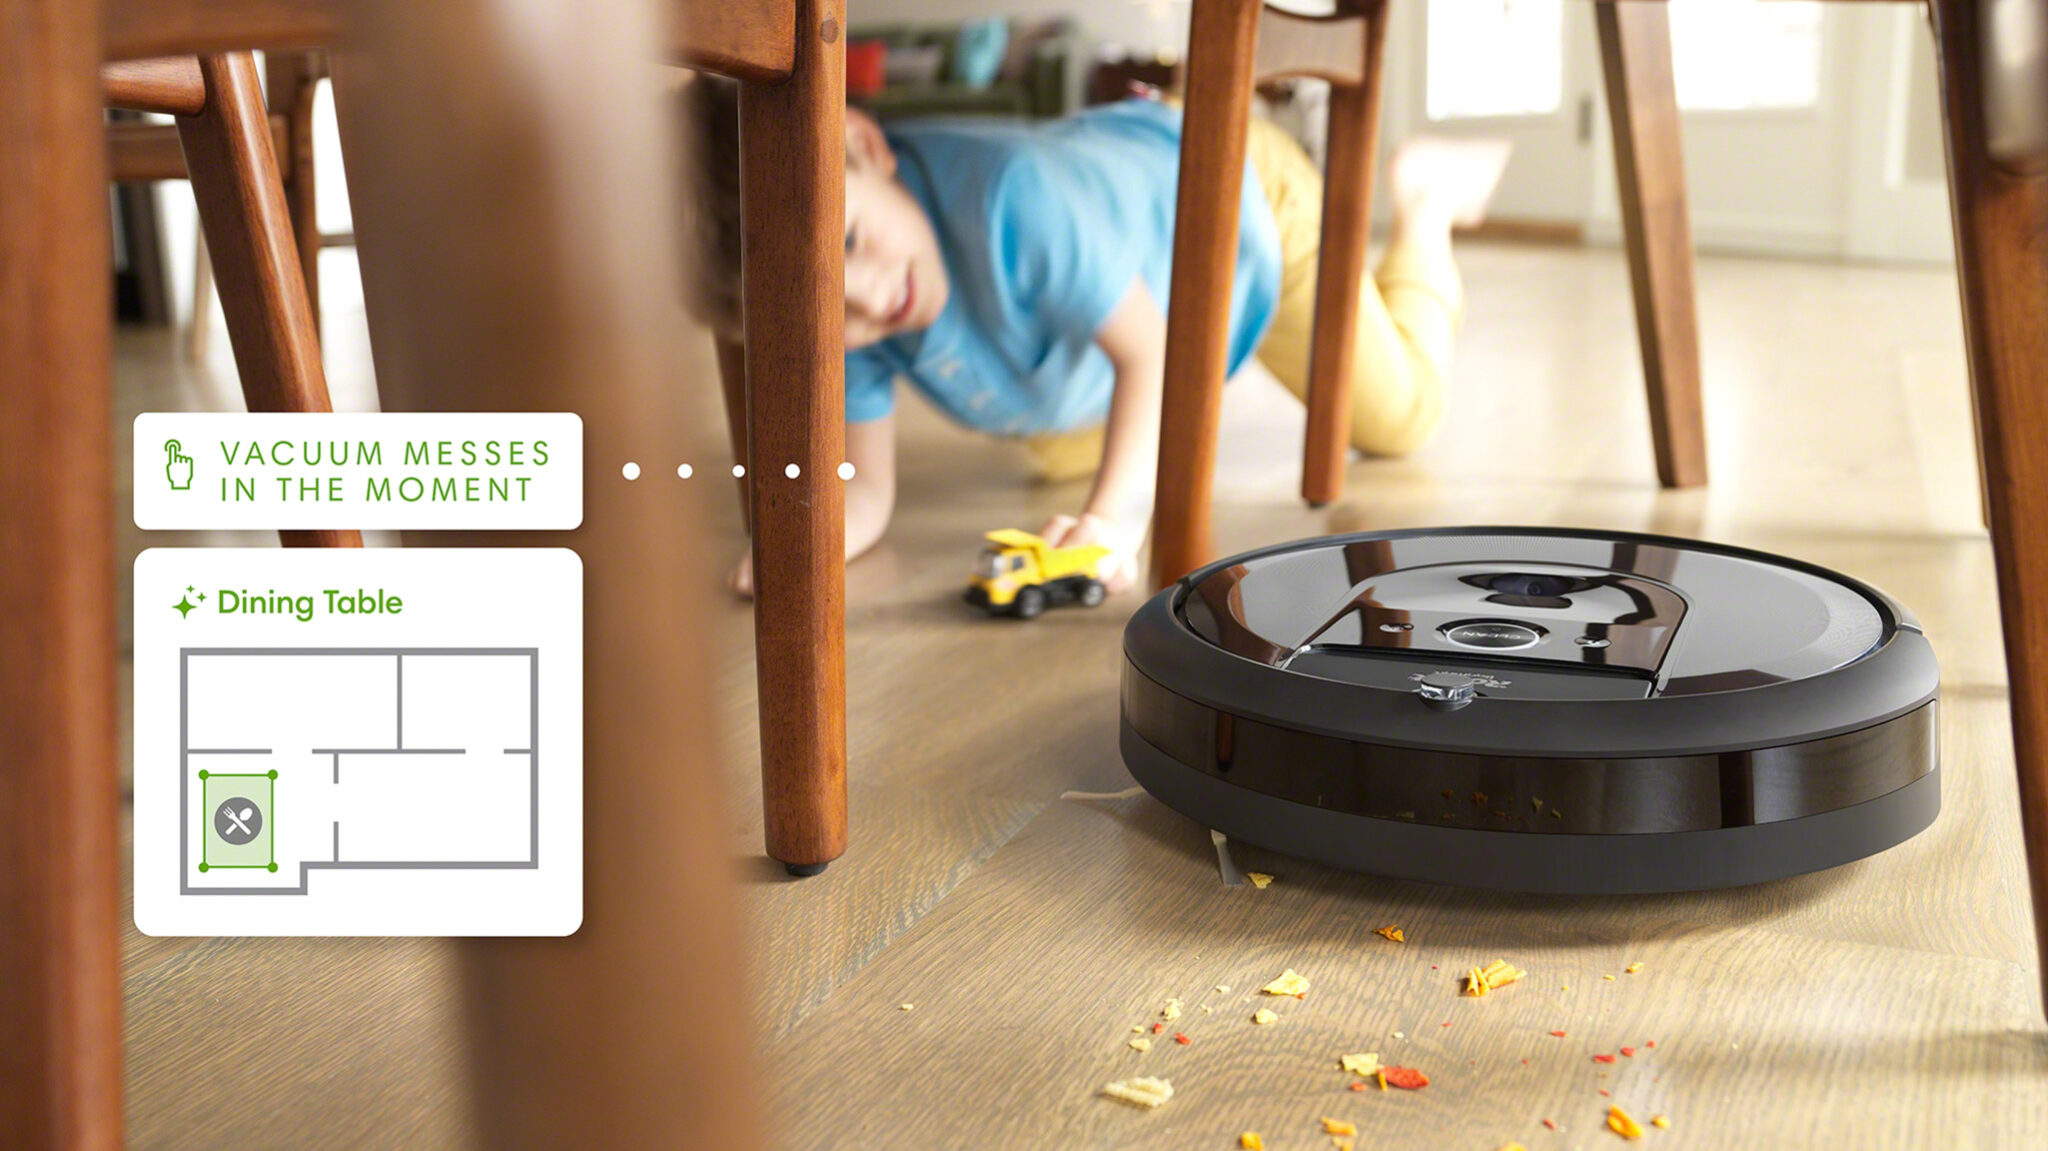 iRobot is offering huge discounts on several of its robot vacuum cleaners